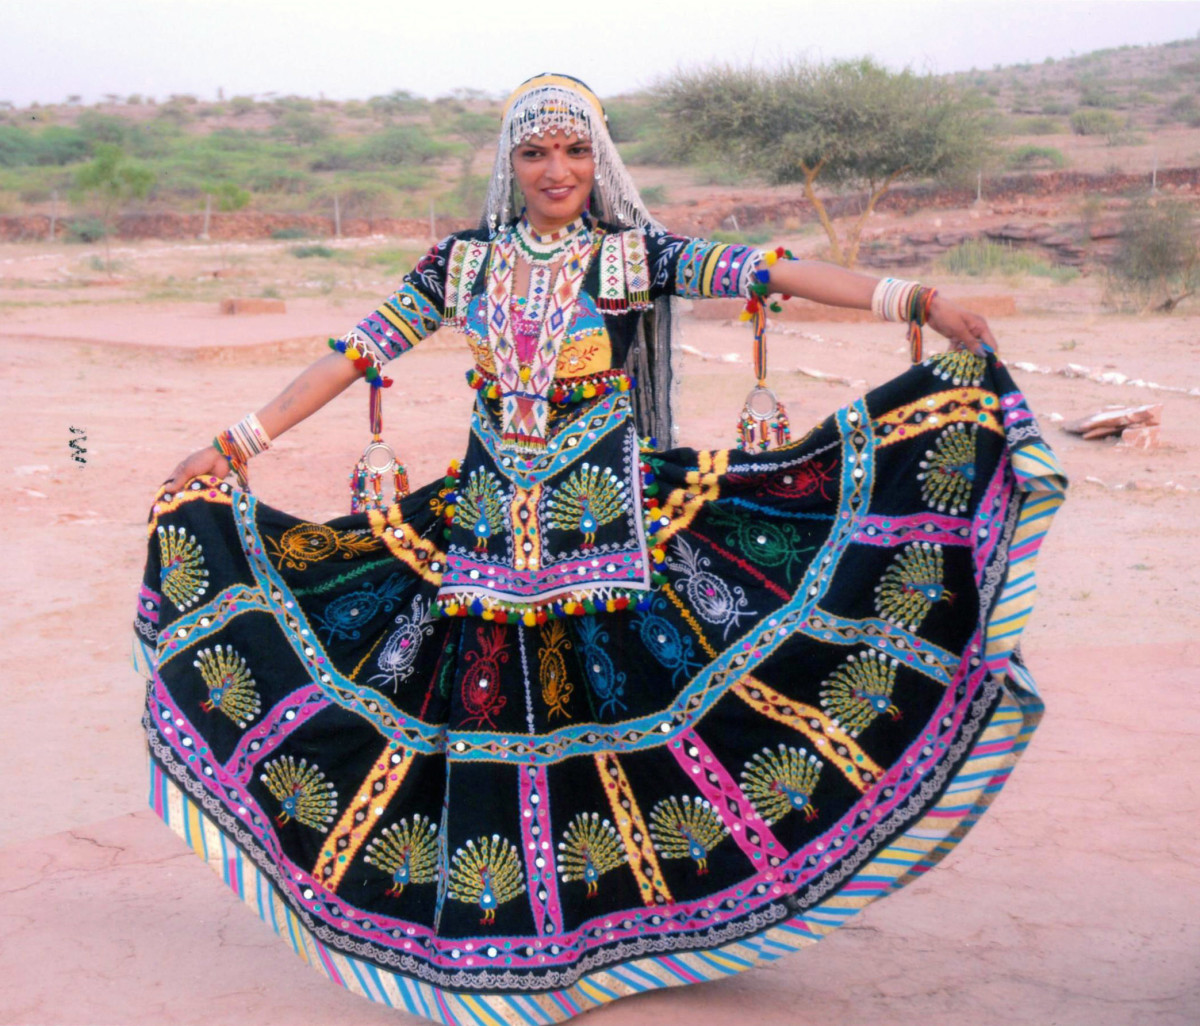 Complete costume of a Kalbelia dancer